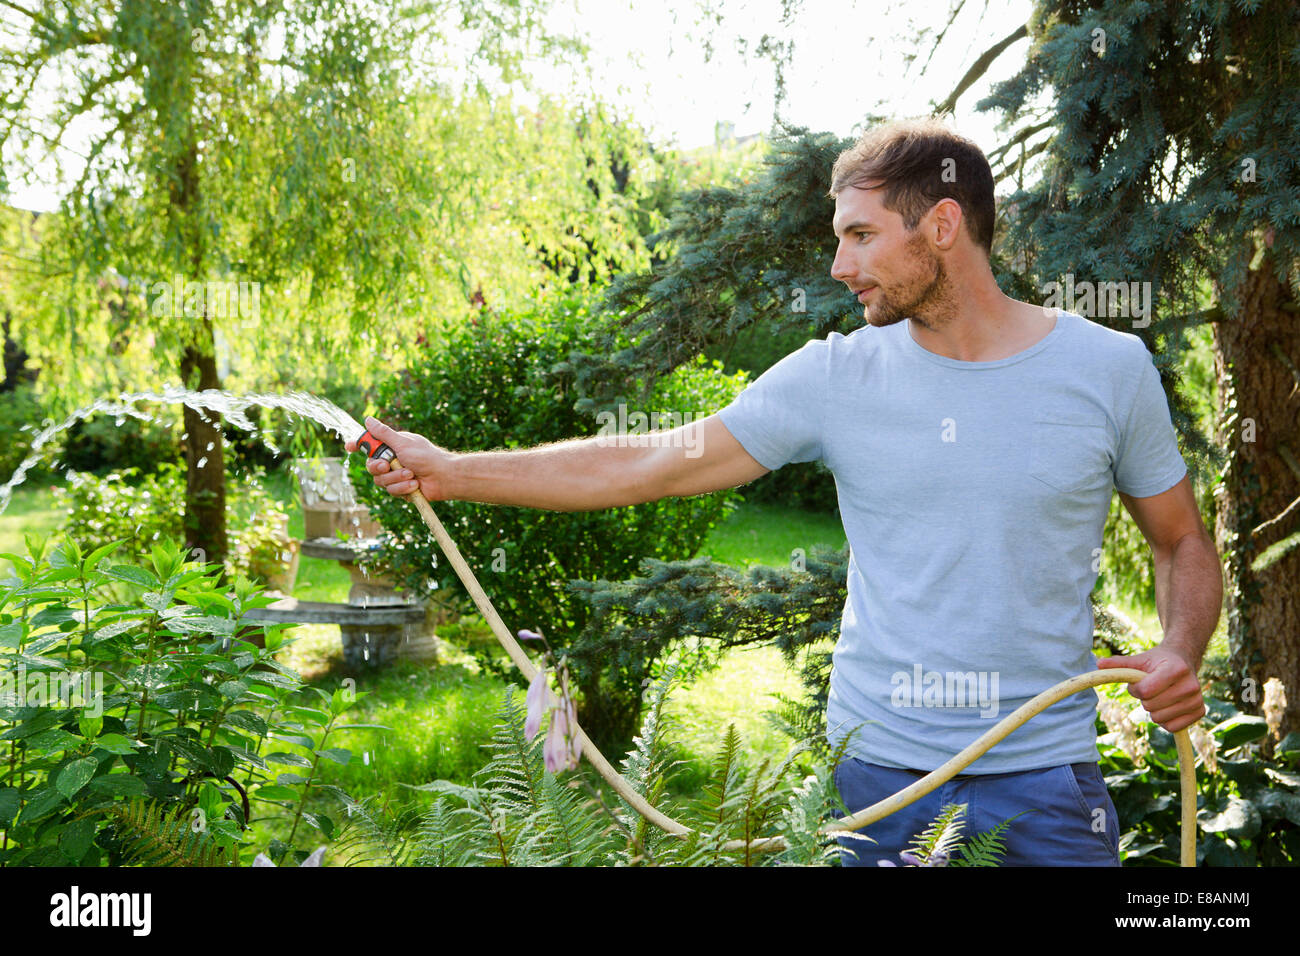 Mid adult man watering garden with hosepipe - Stock Image